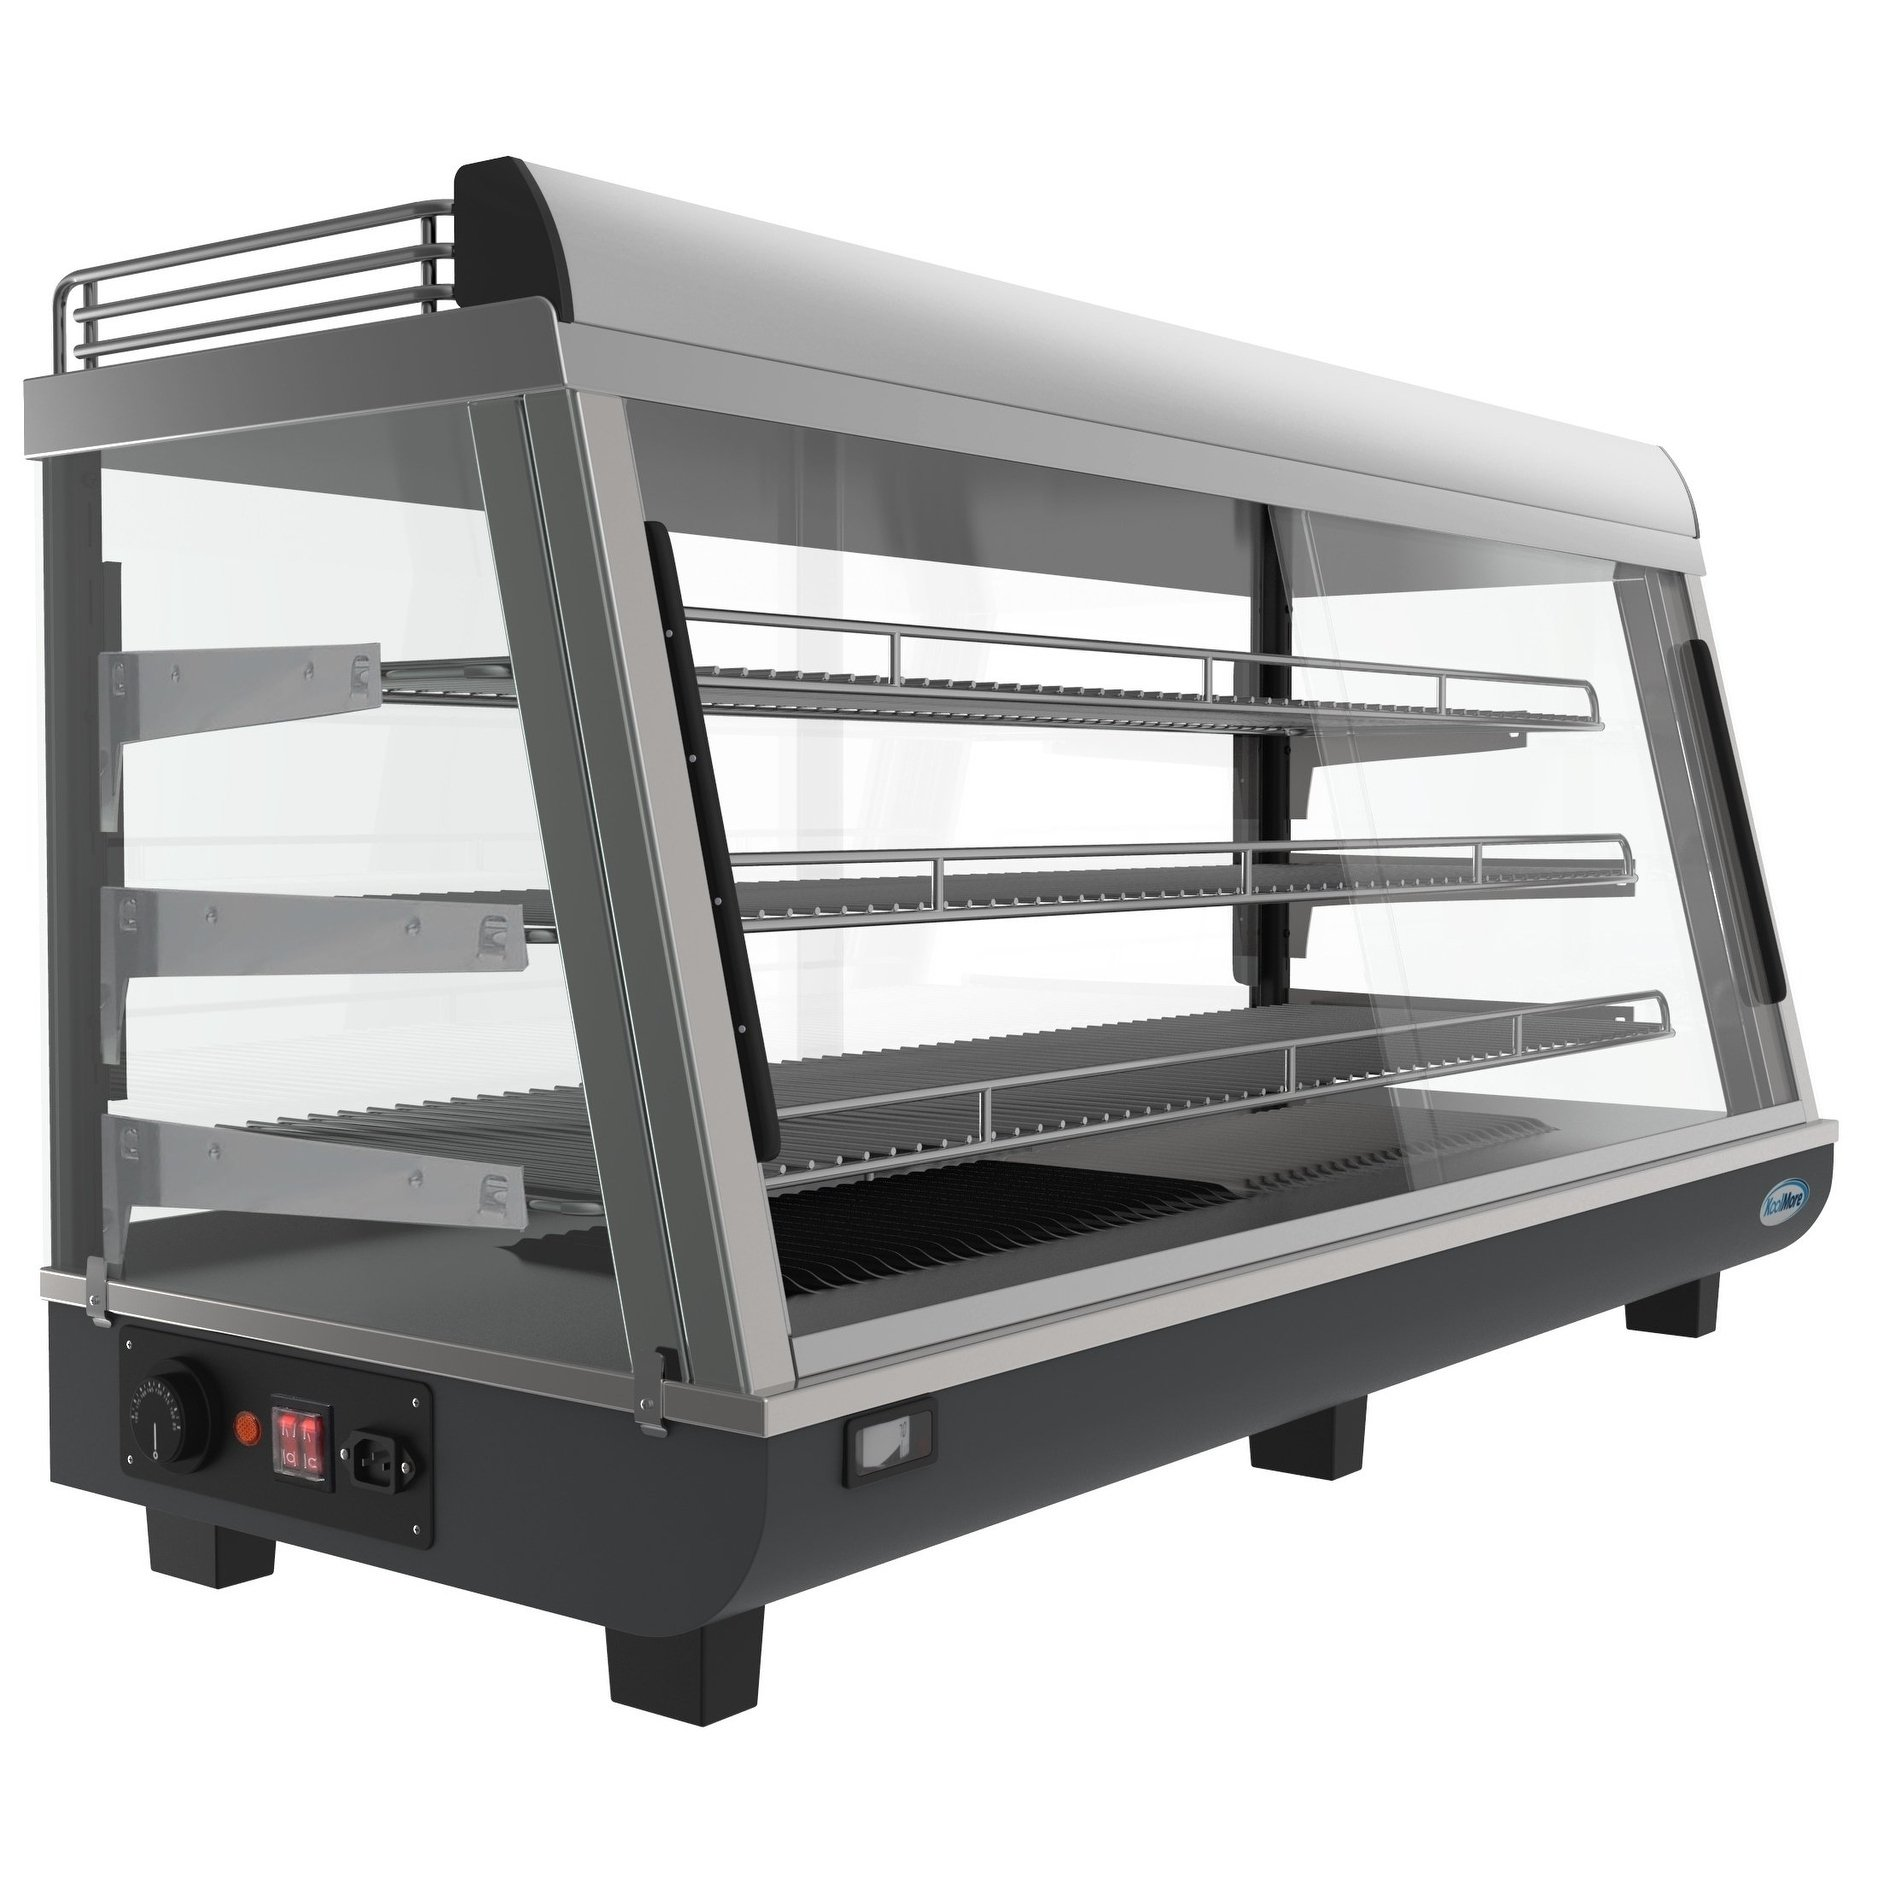 48 Inch Self Service Commercial Countertop Food Warmer Display